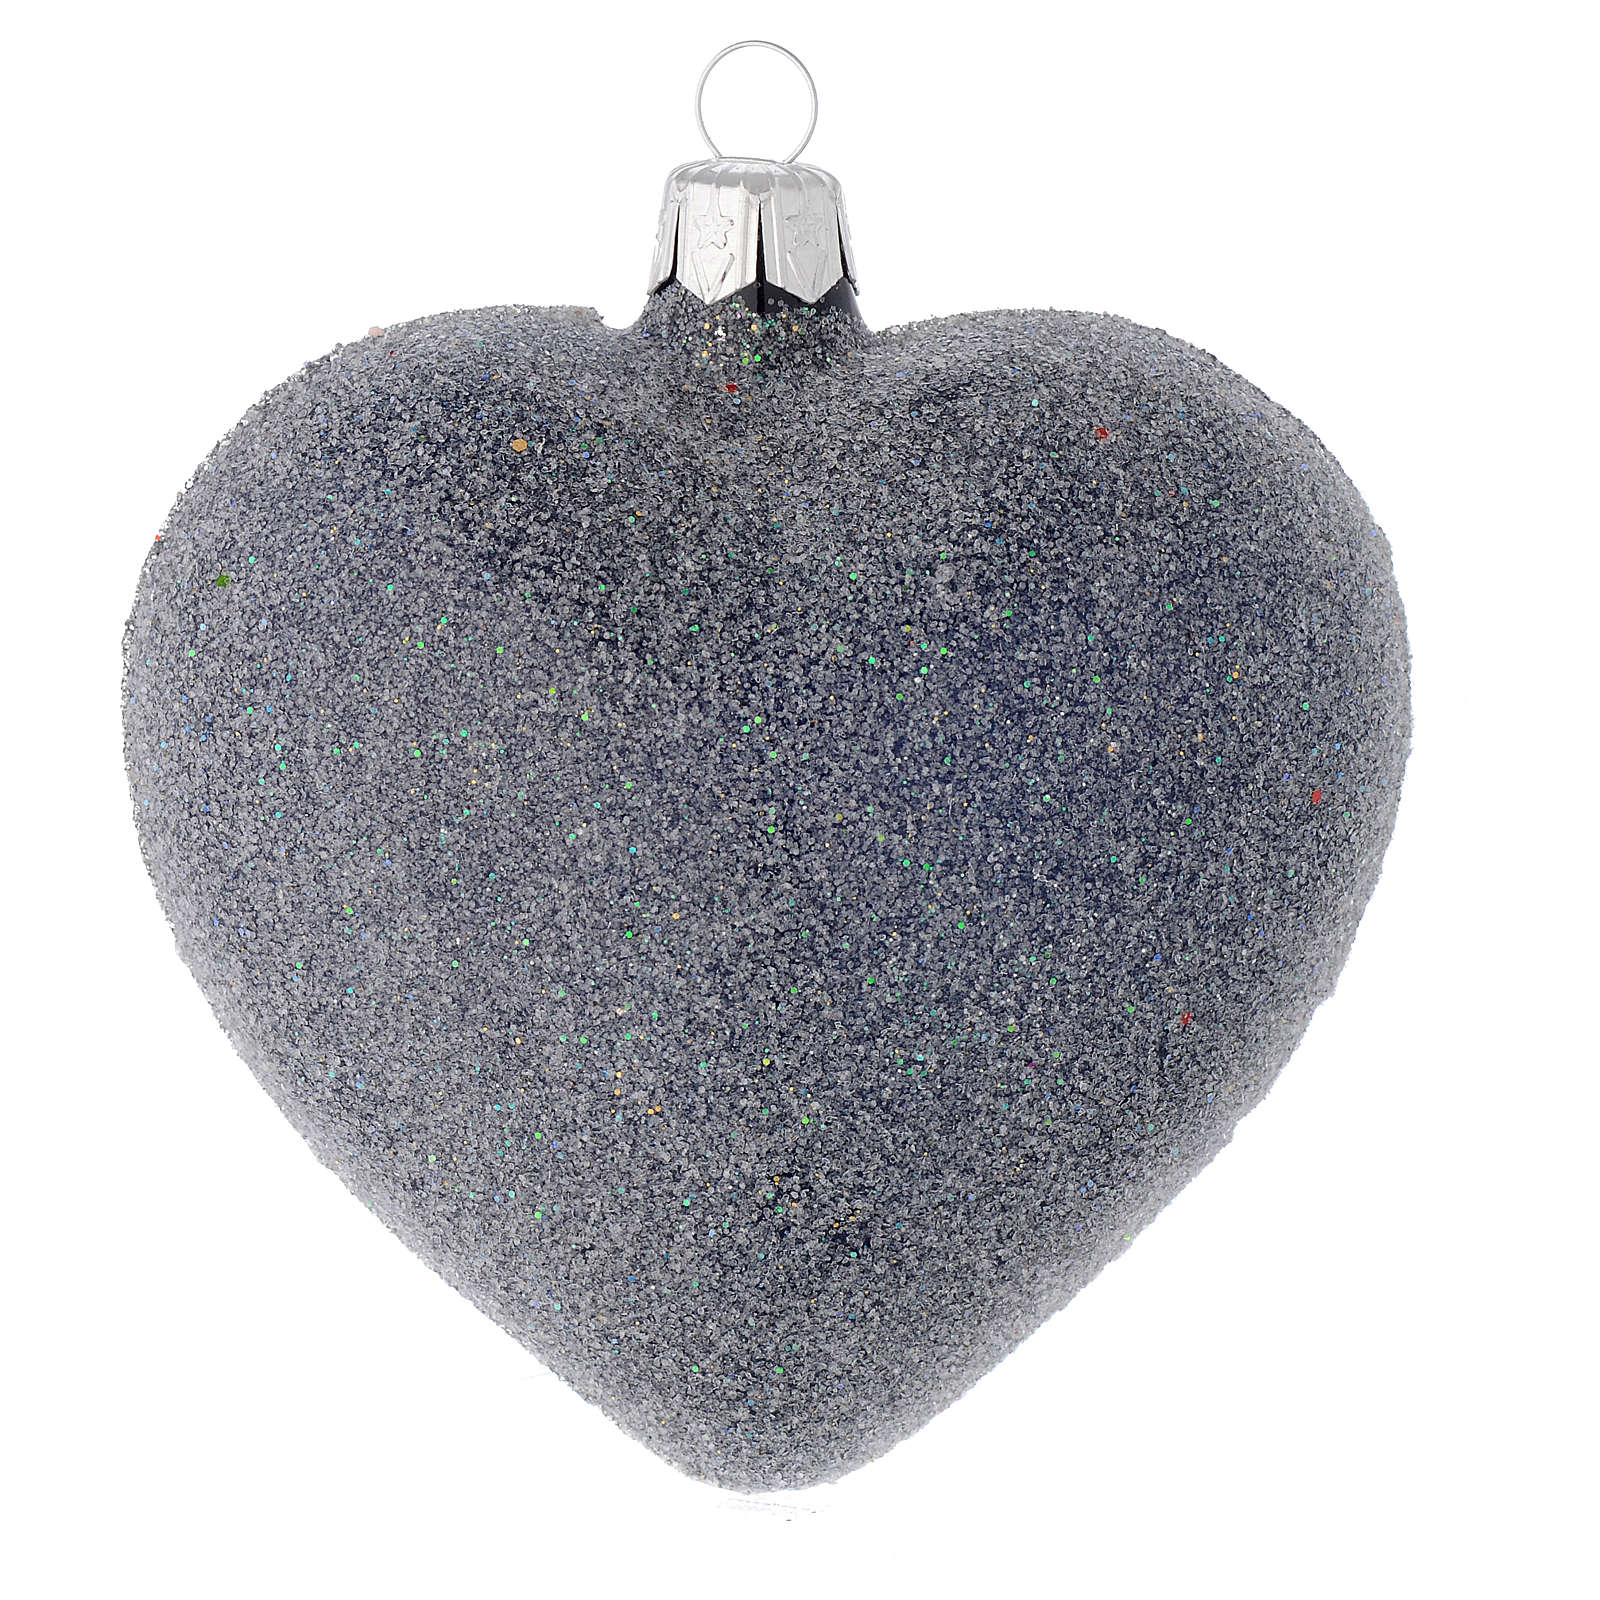 Heart Shaped bauble in blue blown glass with pearls and silver decorations 100mm 4